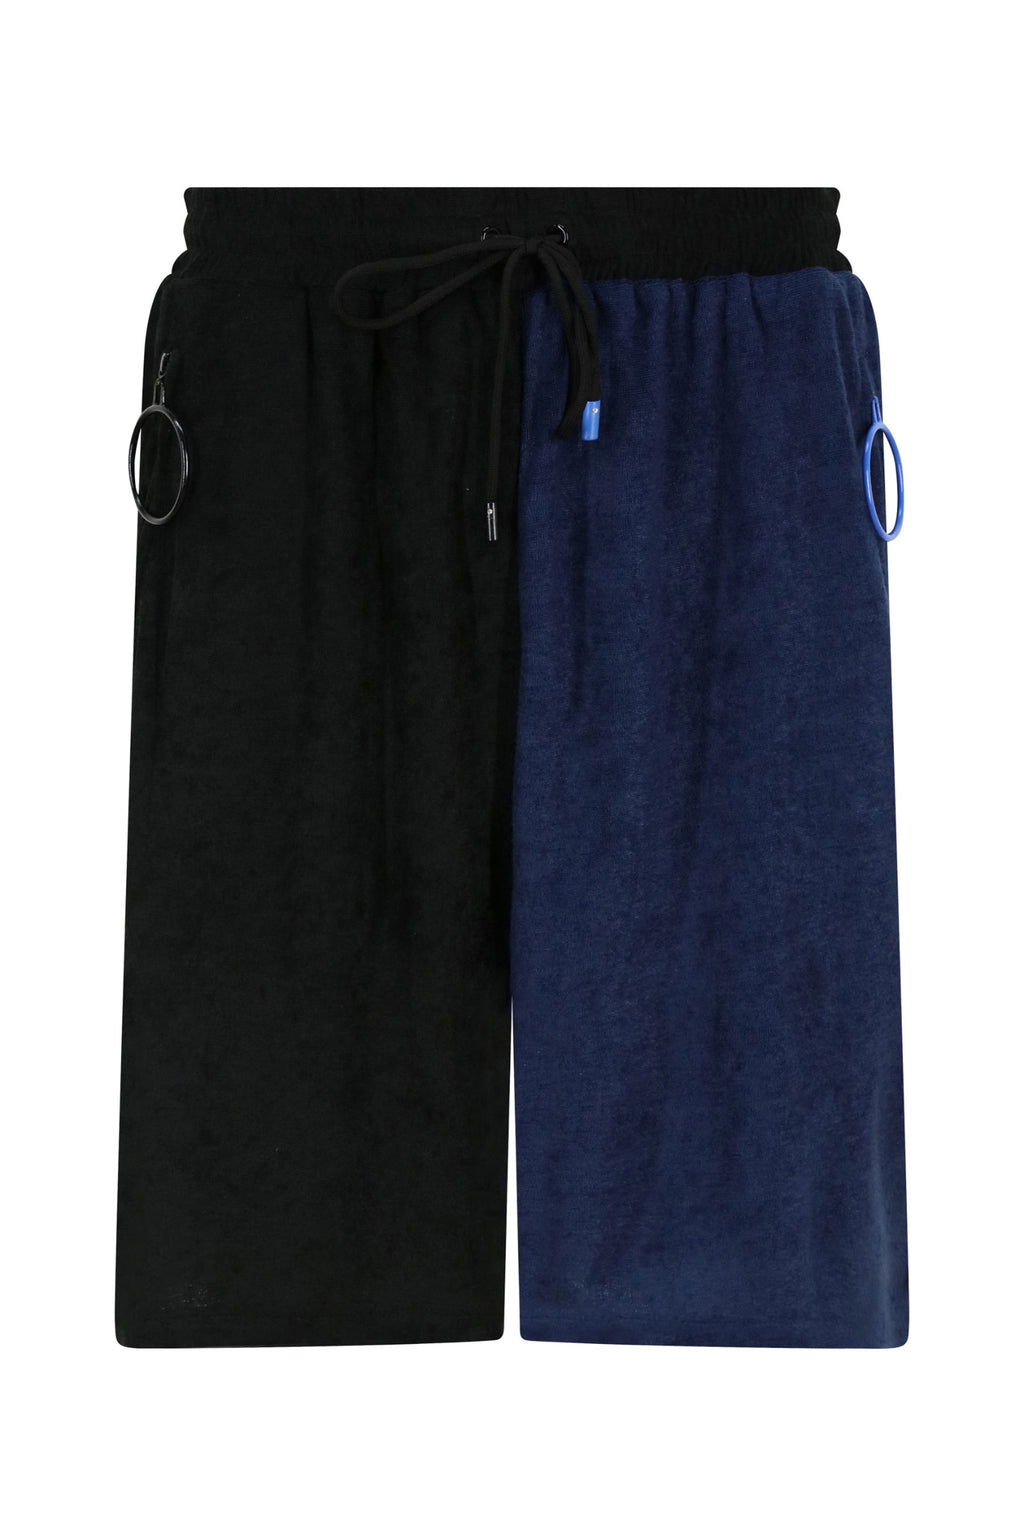 Unisex Black and Navy Terry Shorts